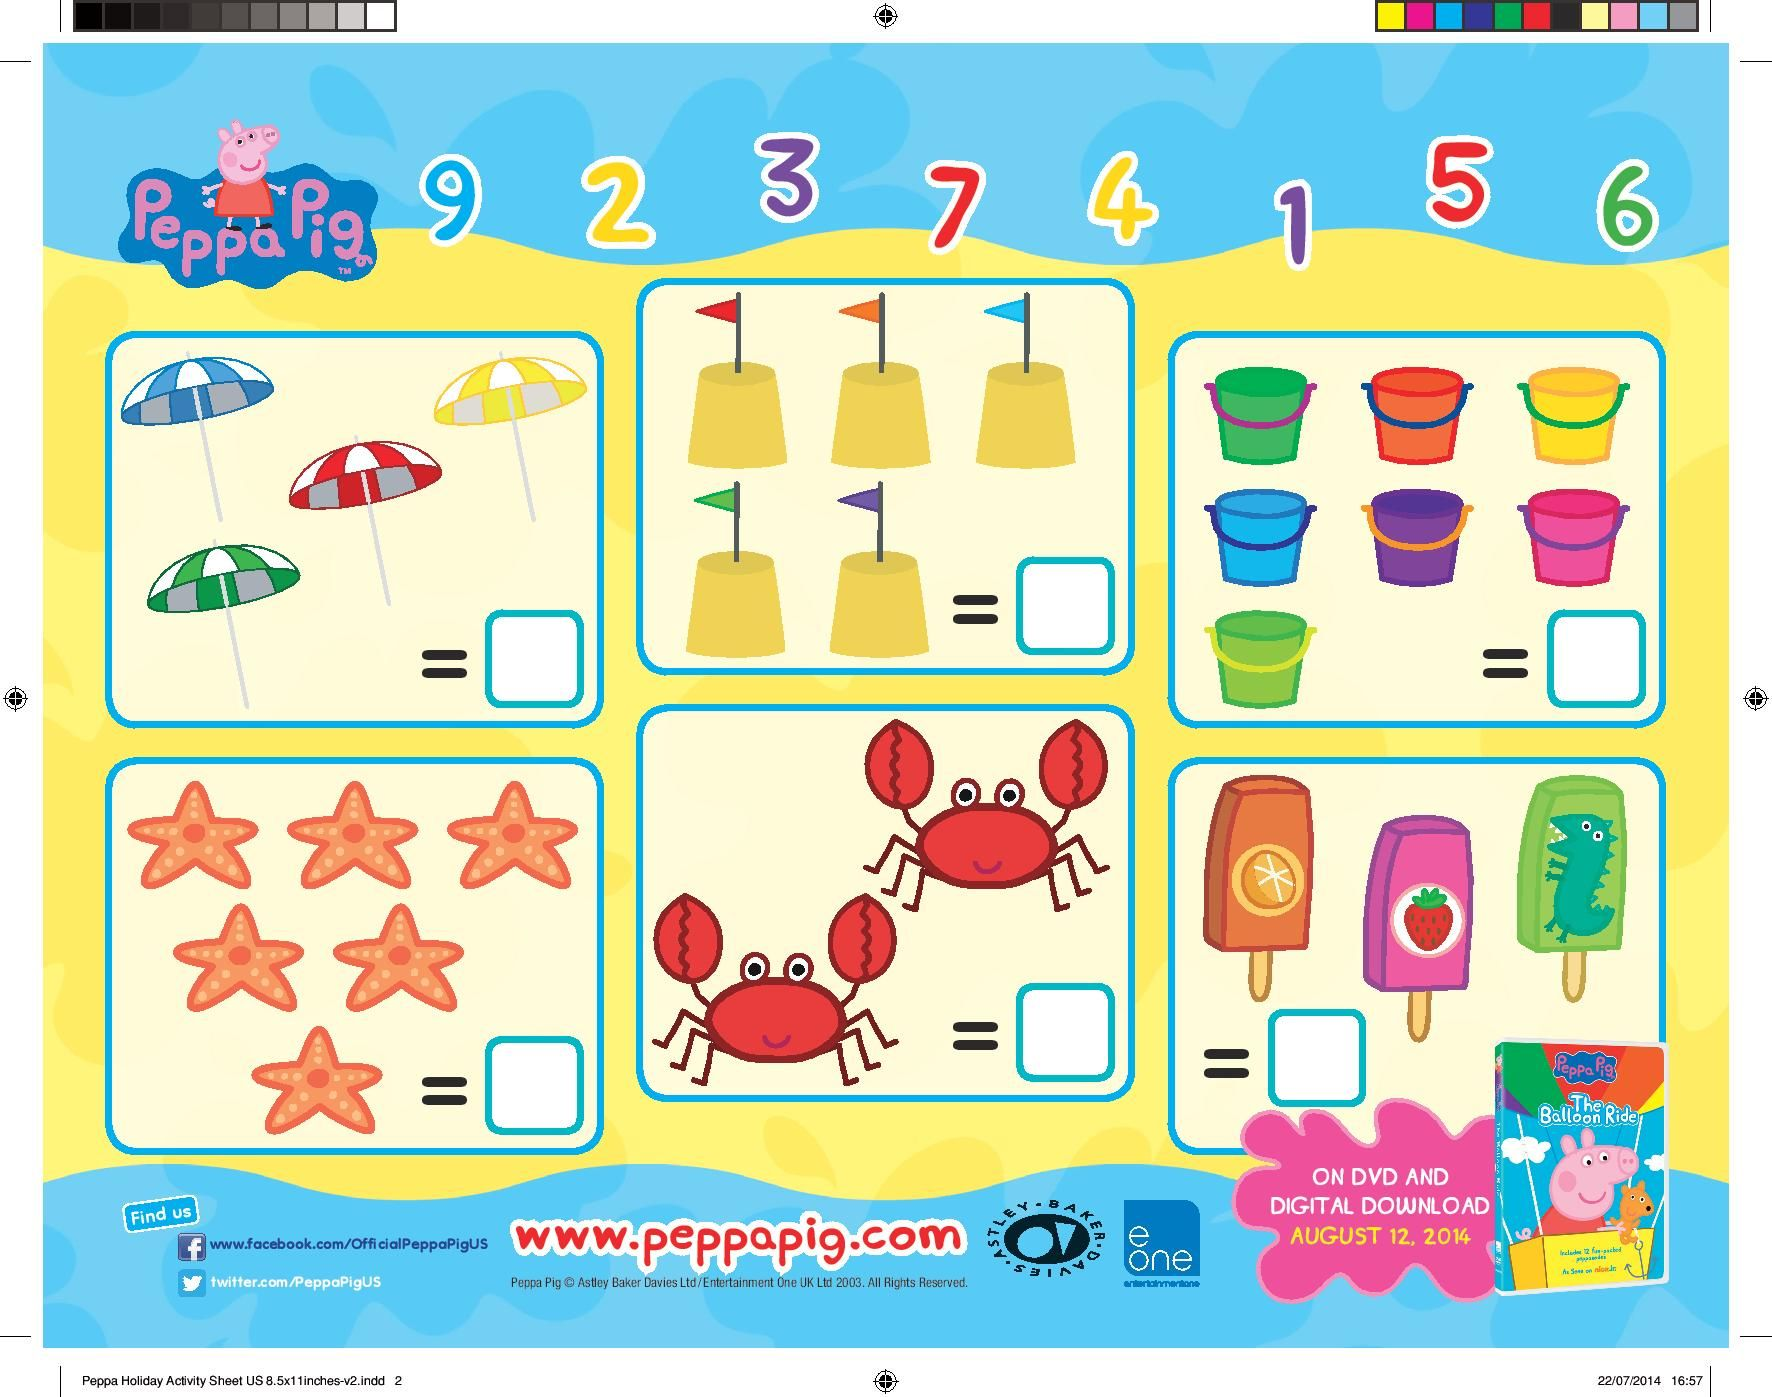 Free Printable Peppa Pig Abc Coloring Pages For Preschoolers In 2021 Abc Coloring Pages Abc Coloring Coloring Pages [ 1536 x 1187 Pixel ]